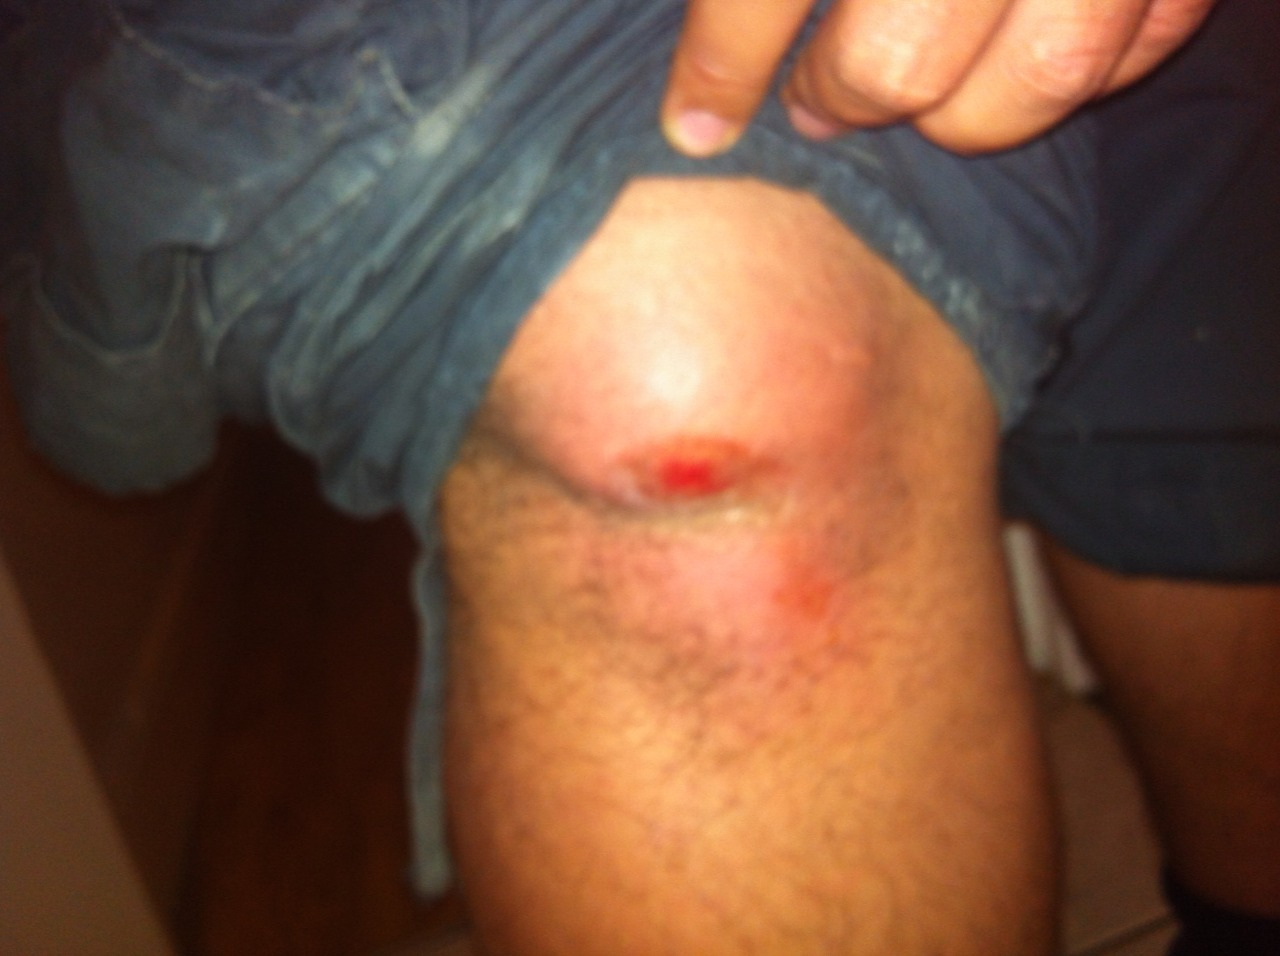 Ahhhhhhh in summer 2012 I proper mashed up my knee skated, it actuallly look like my knee had another knee dude.  Took about 2 weeks off after this I couldn't walk at all.  PEEEAAKKKKKKK  U had any mad injuries???